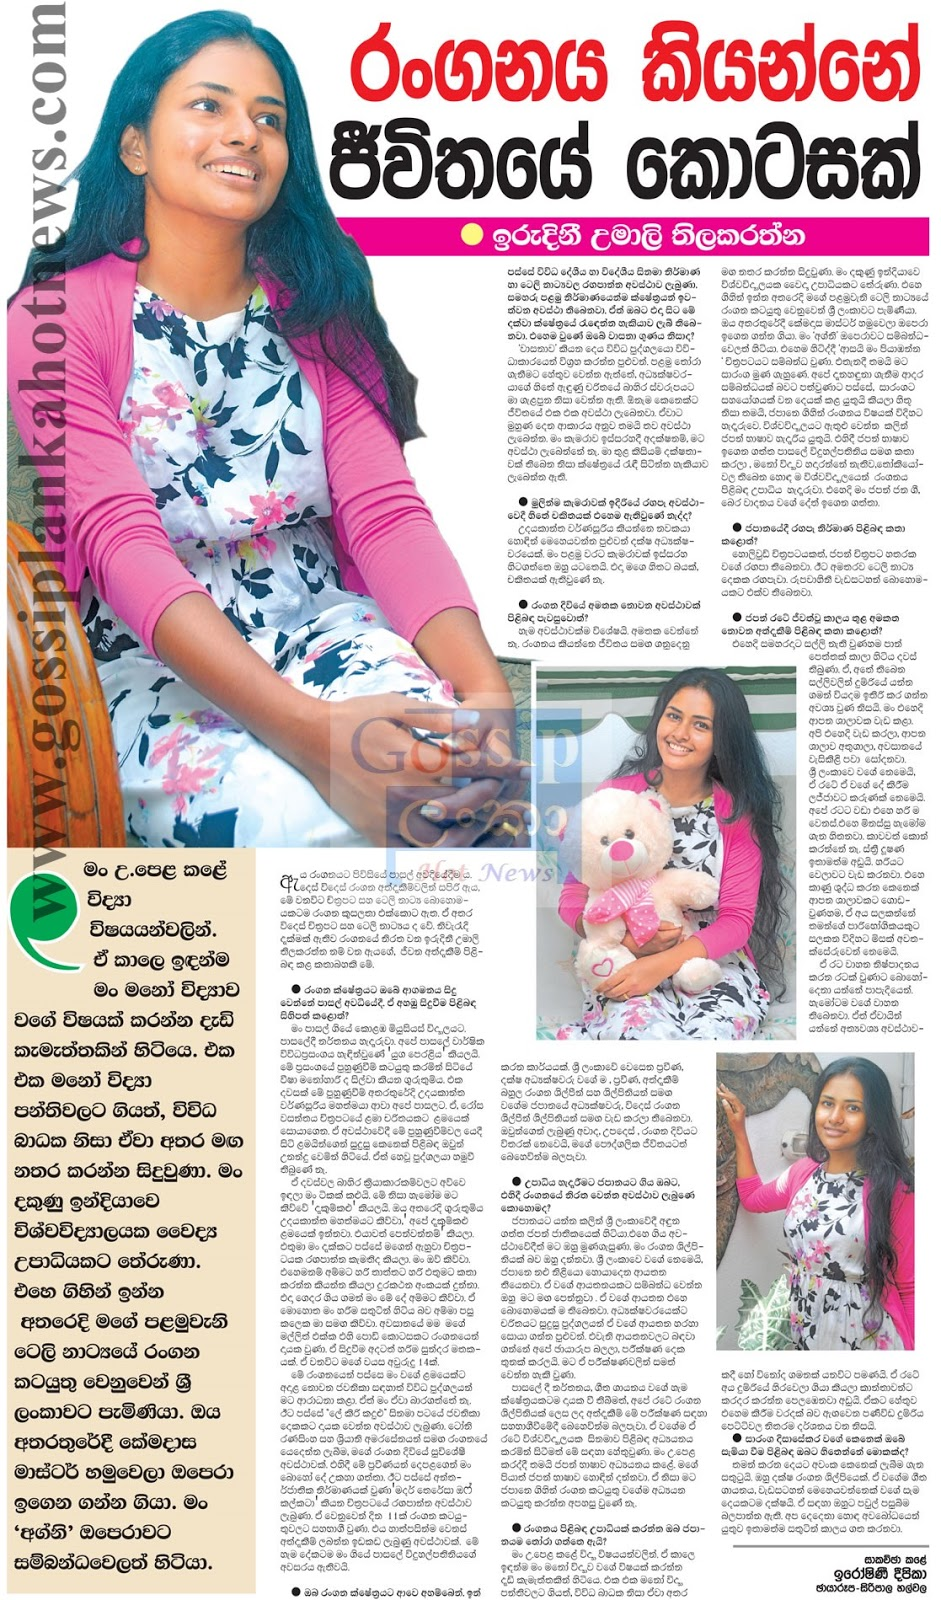 Gossip Chat With Umali Thilakaratne